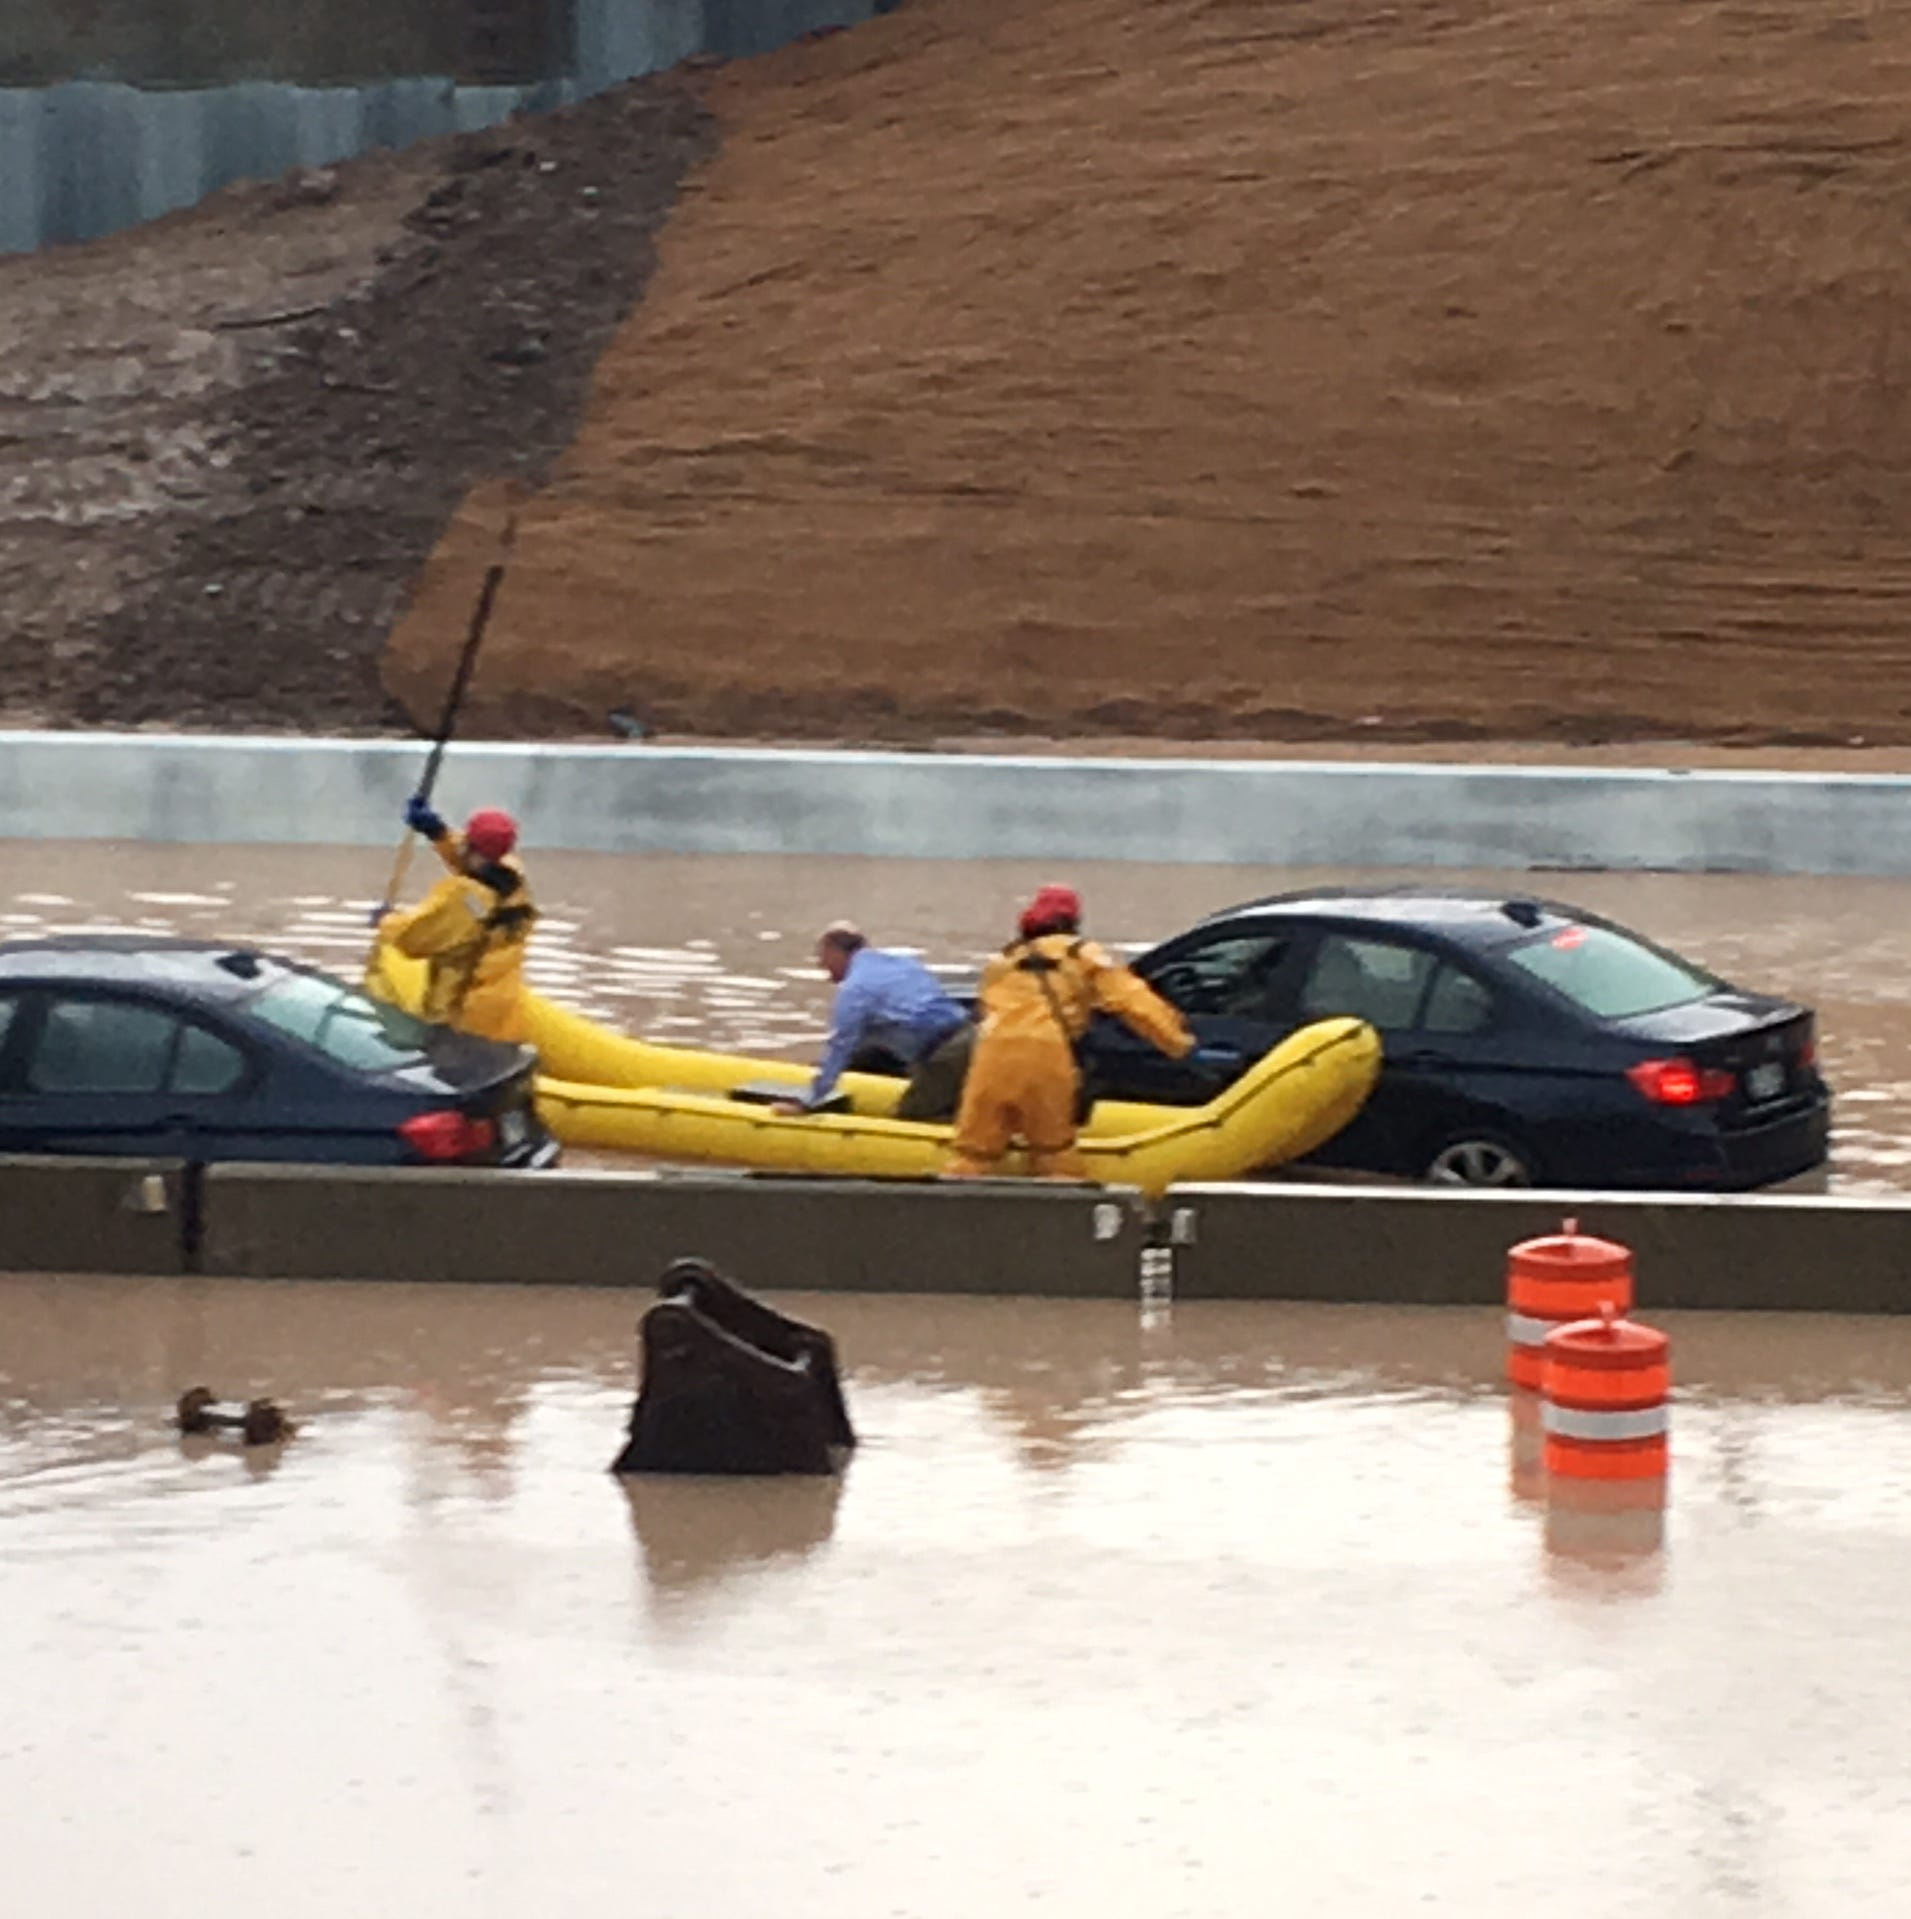 I-43 reopened after flash flooding blocked it in both directions at Good Hope Road